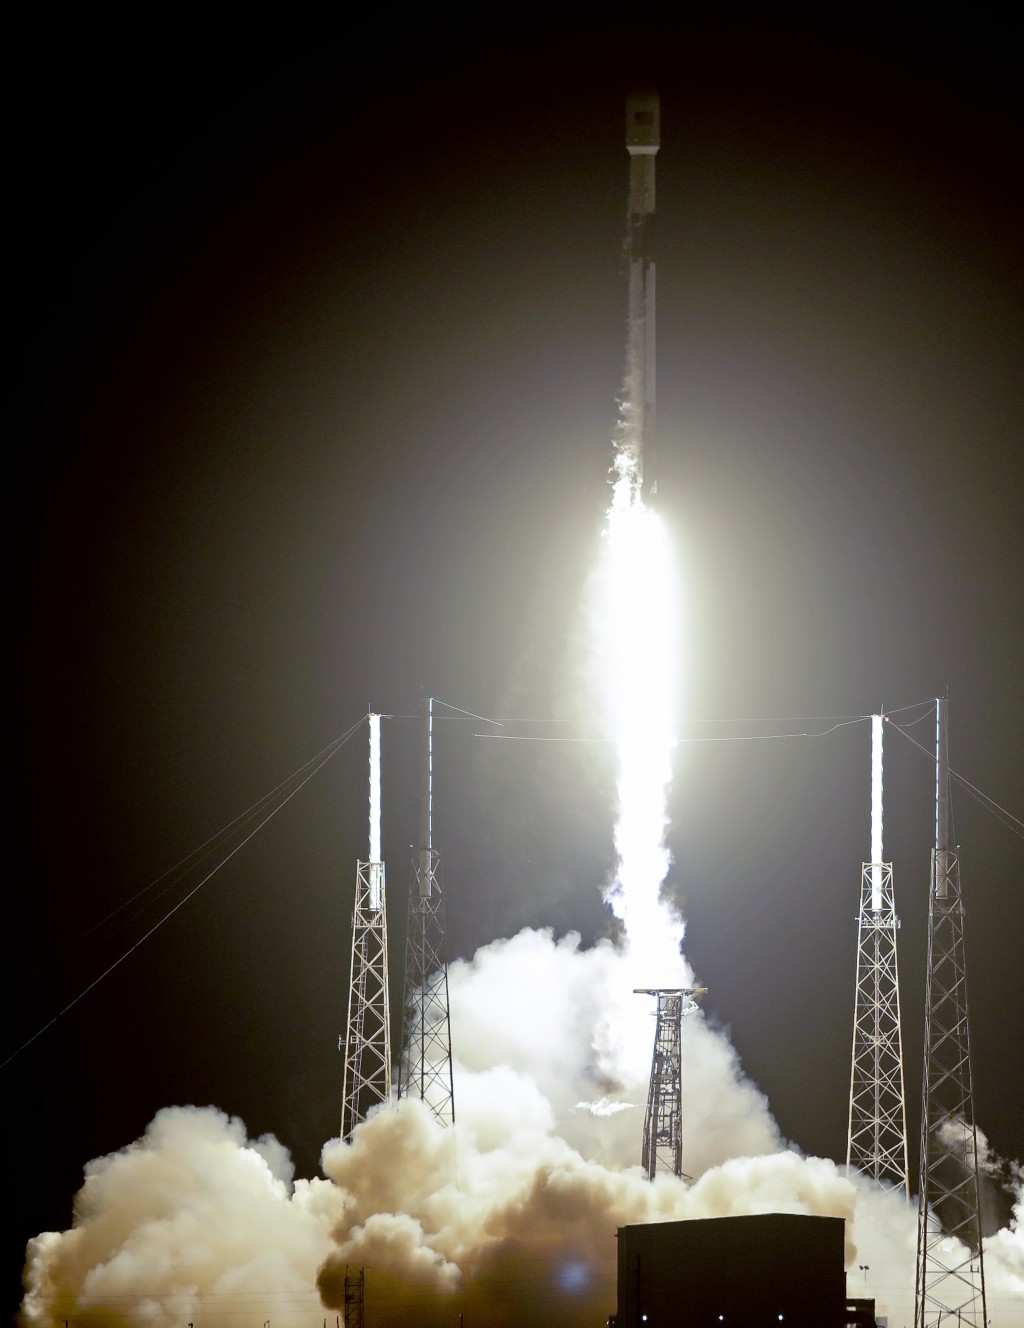 A Falcon 9 SpaceX rocket, with a payload of 60 satellites for SpaceX's Starlink broadband network, lifts off from Space Launch Complex 40 at the Cape ...